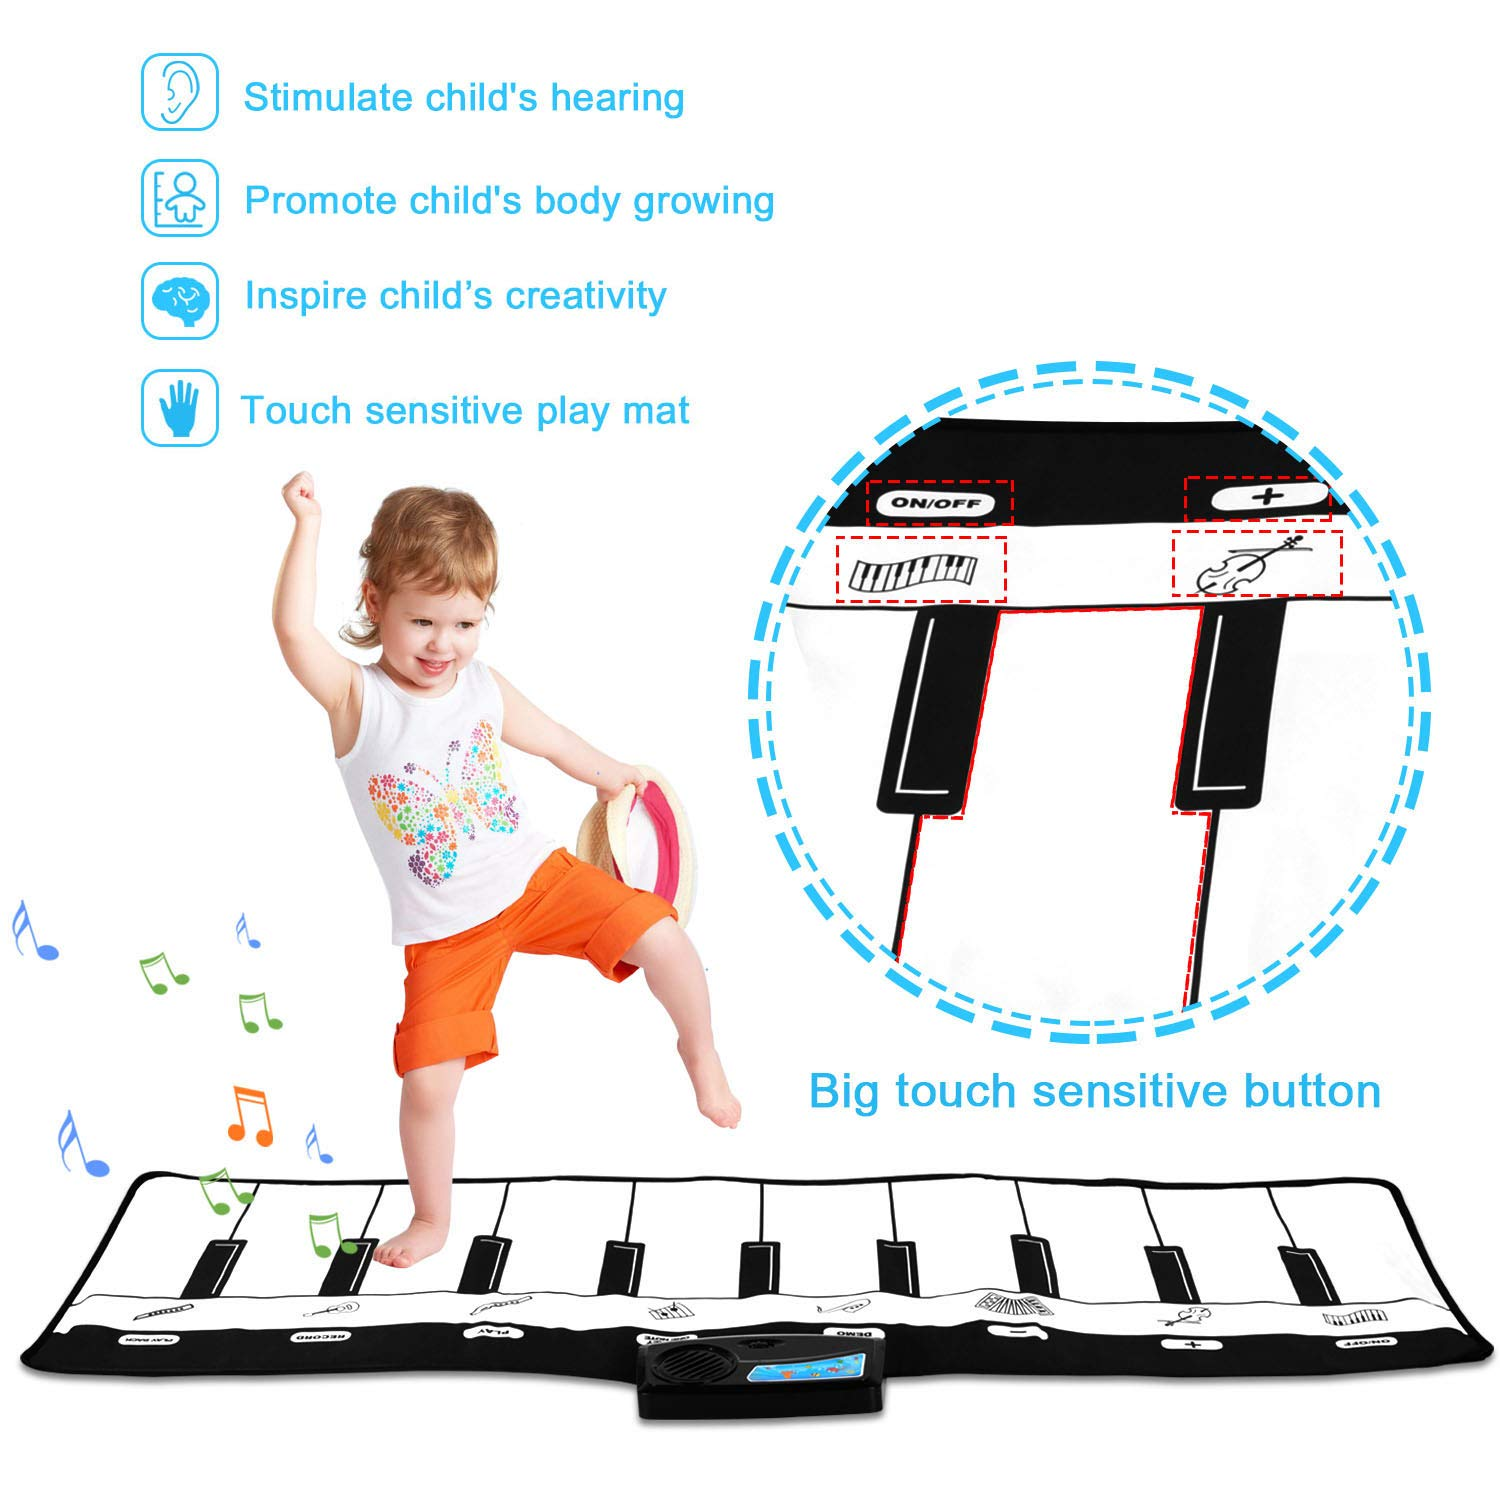 Kids Piano Mat, Keyboard Play Mat, Floor Piano Mat for Kids, Musical Piano Mat has 8 Musical Instruments, Record, Playback, Demo, Play, Best Birthday Christmas Day Gifts for Girls, Boys,Children by M SANMERSEN (Image #3)